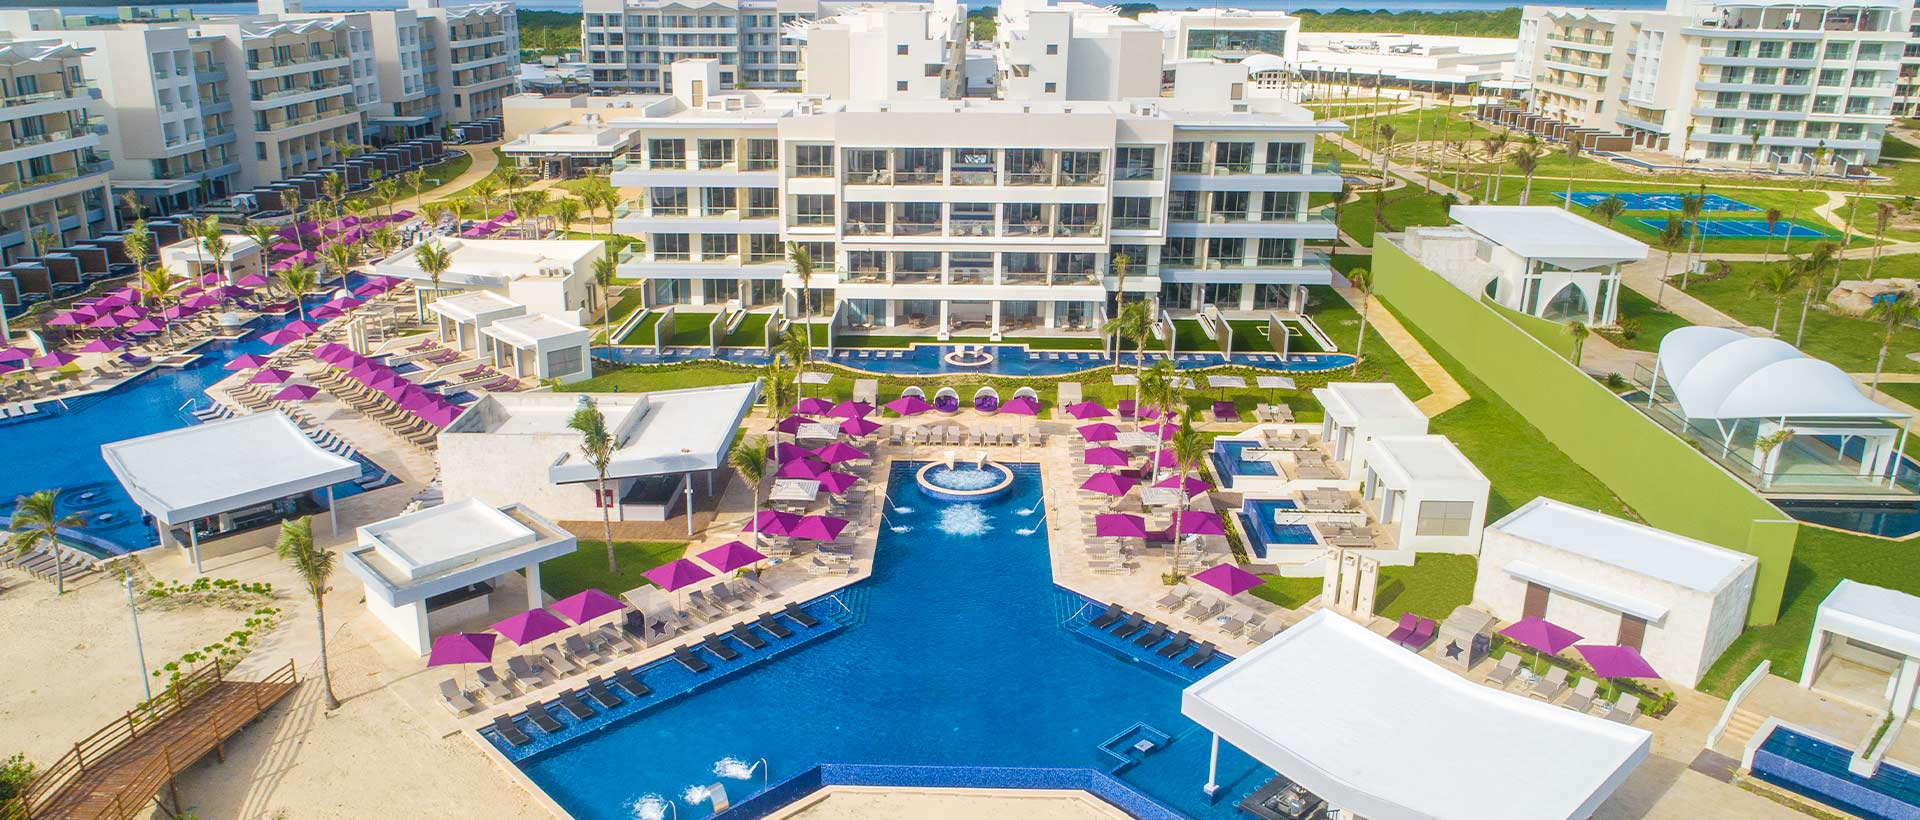 Planet Hollywood Cancun, An Autograph Collection All-Inclusive Resort